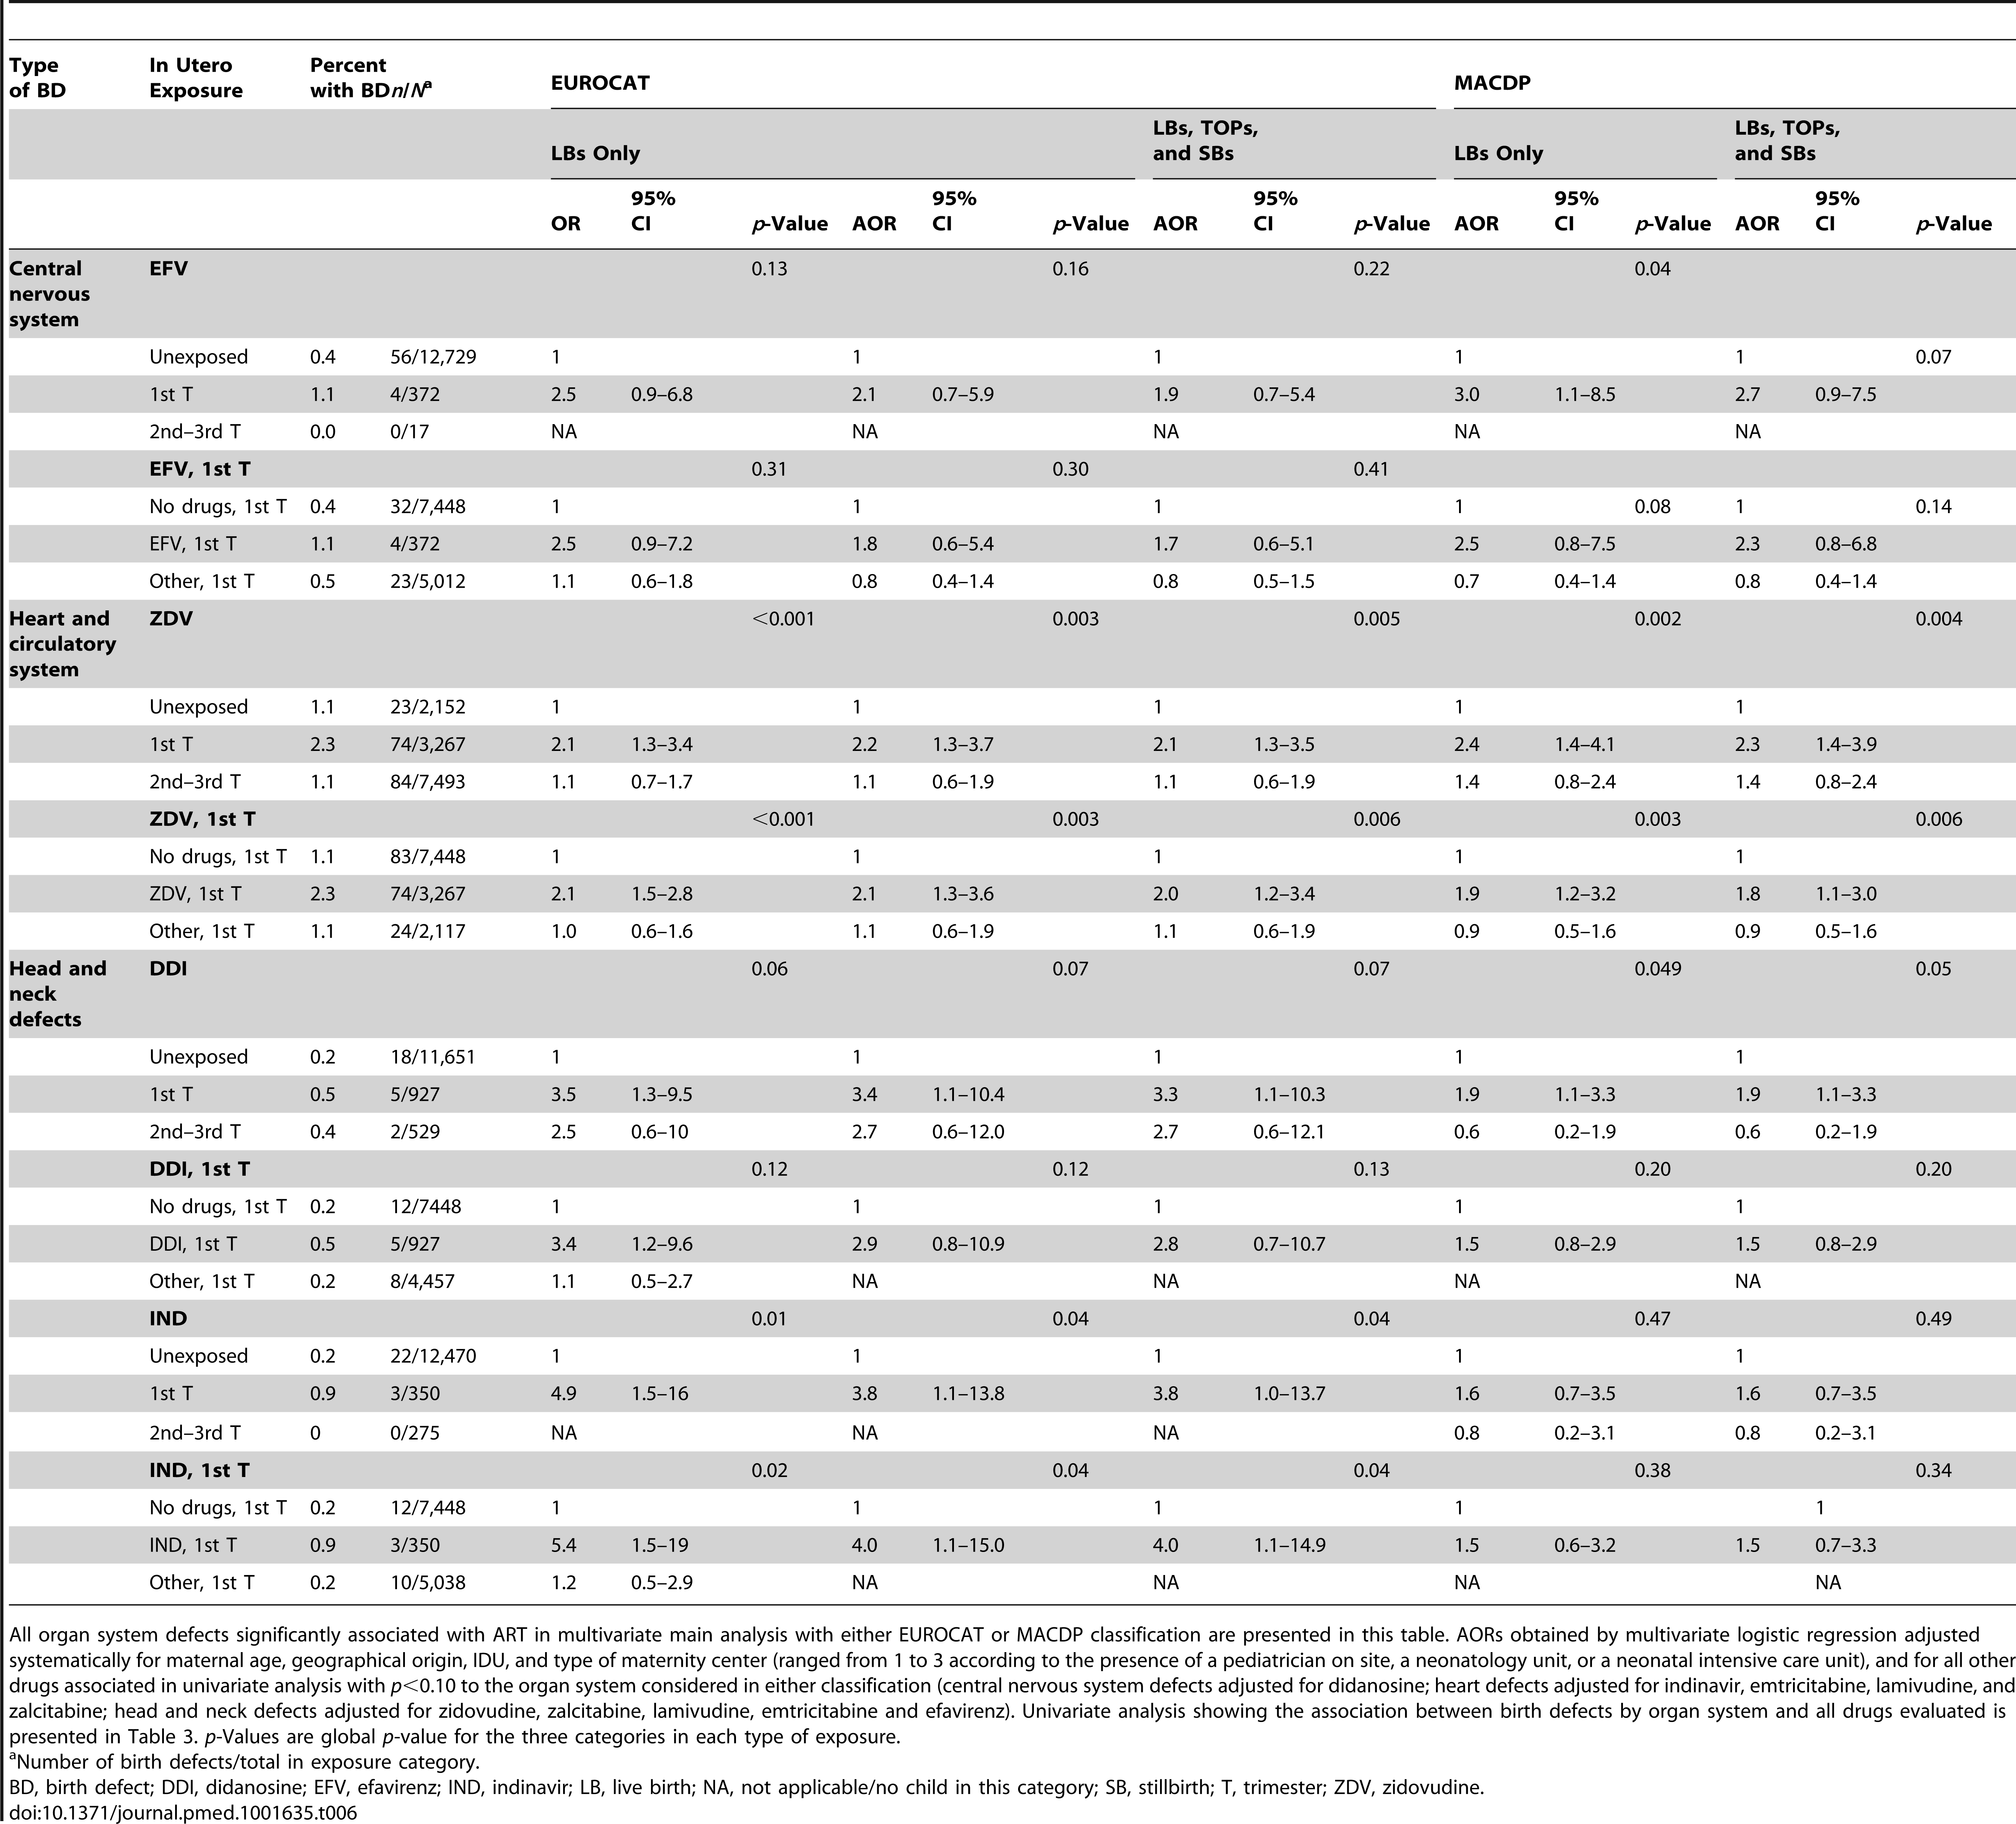 Association between birth defects by organ system and ARV drug exposures (French Perinatal Cohort [ANRS CO1/CO11]).